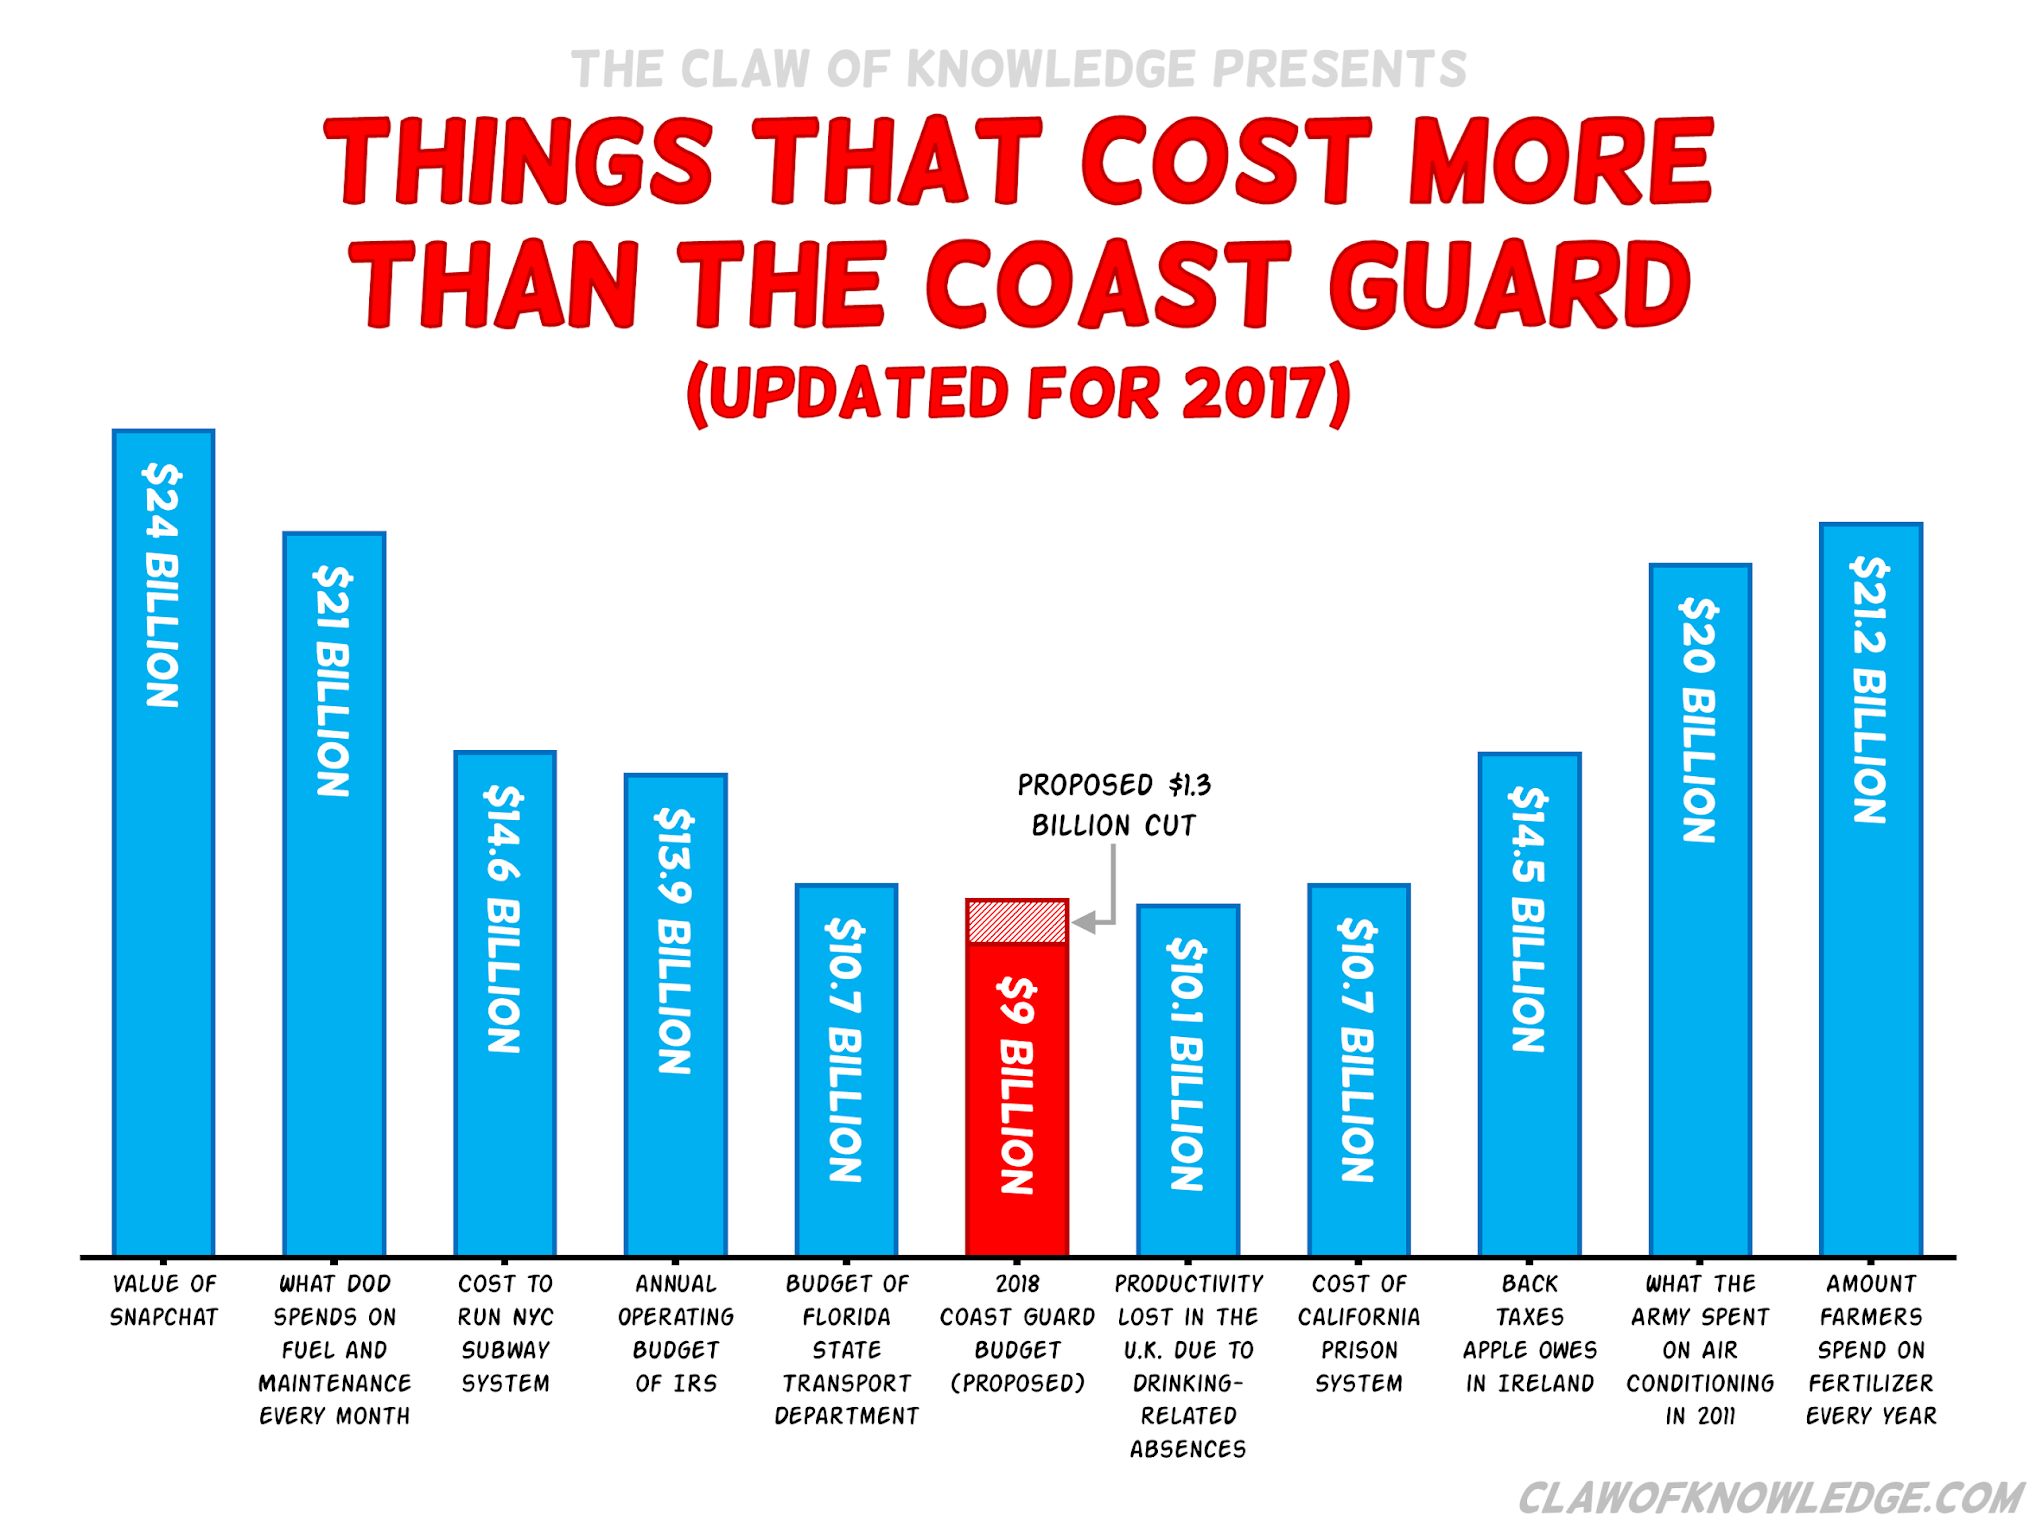 Graph showing how tiny the Coast Guard's budget is